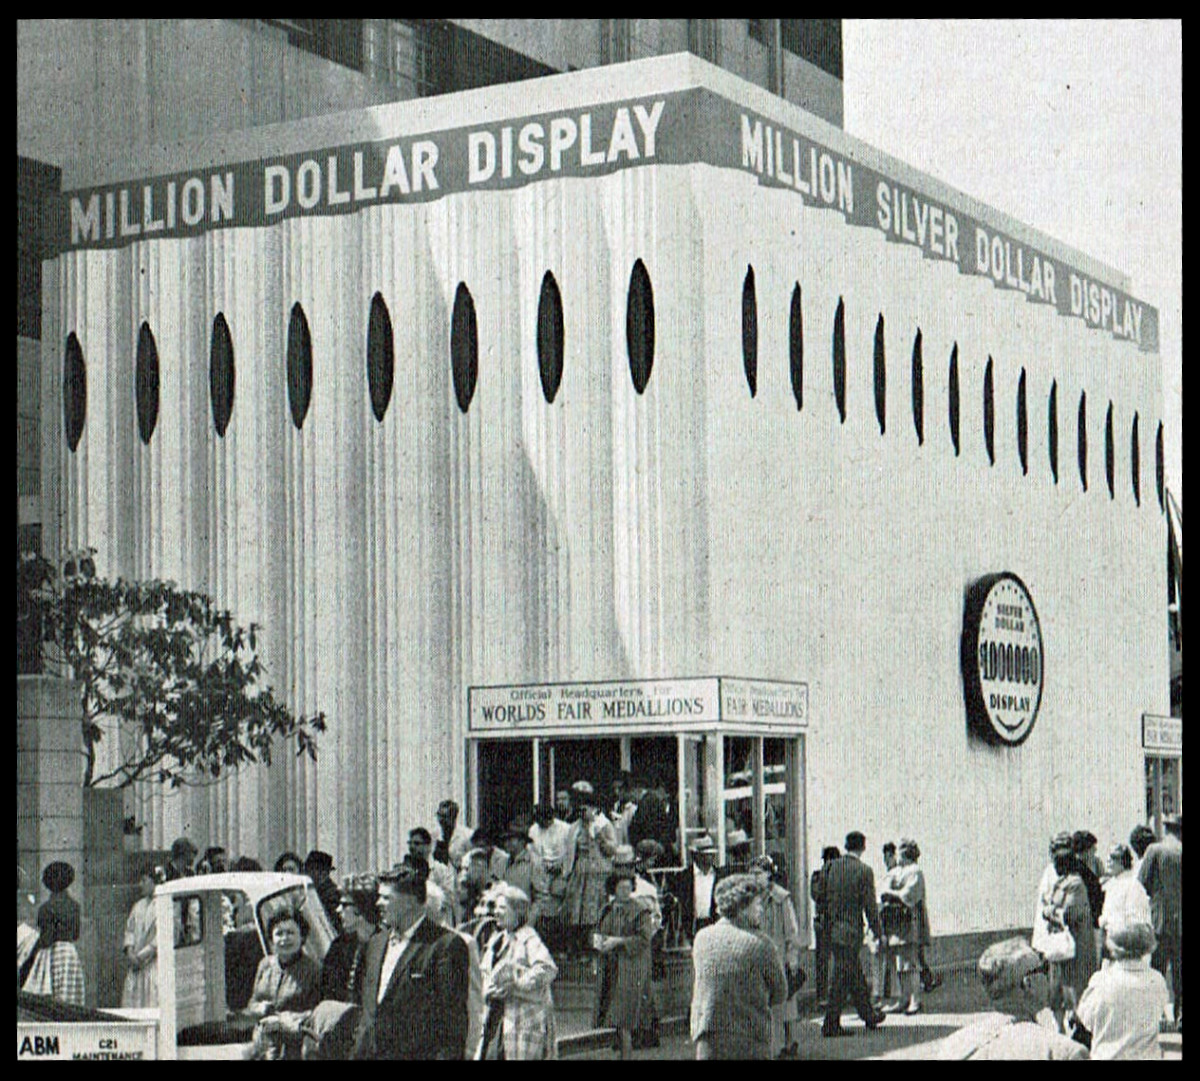 The Behlen steel building that housed the coins at the fair.